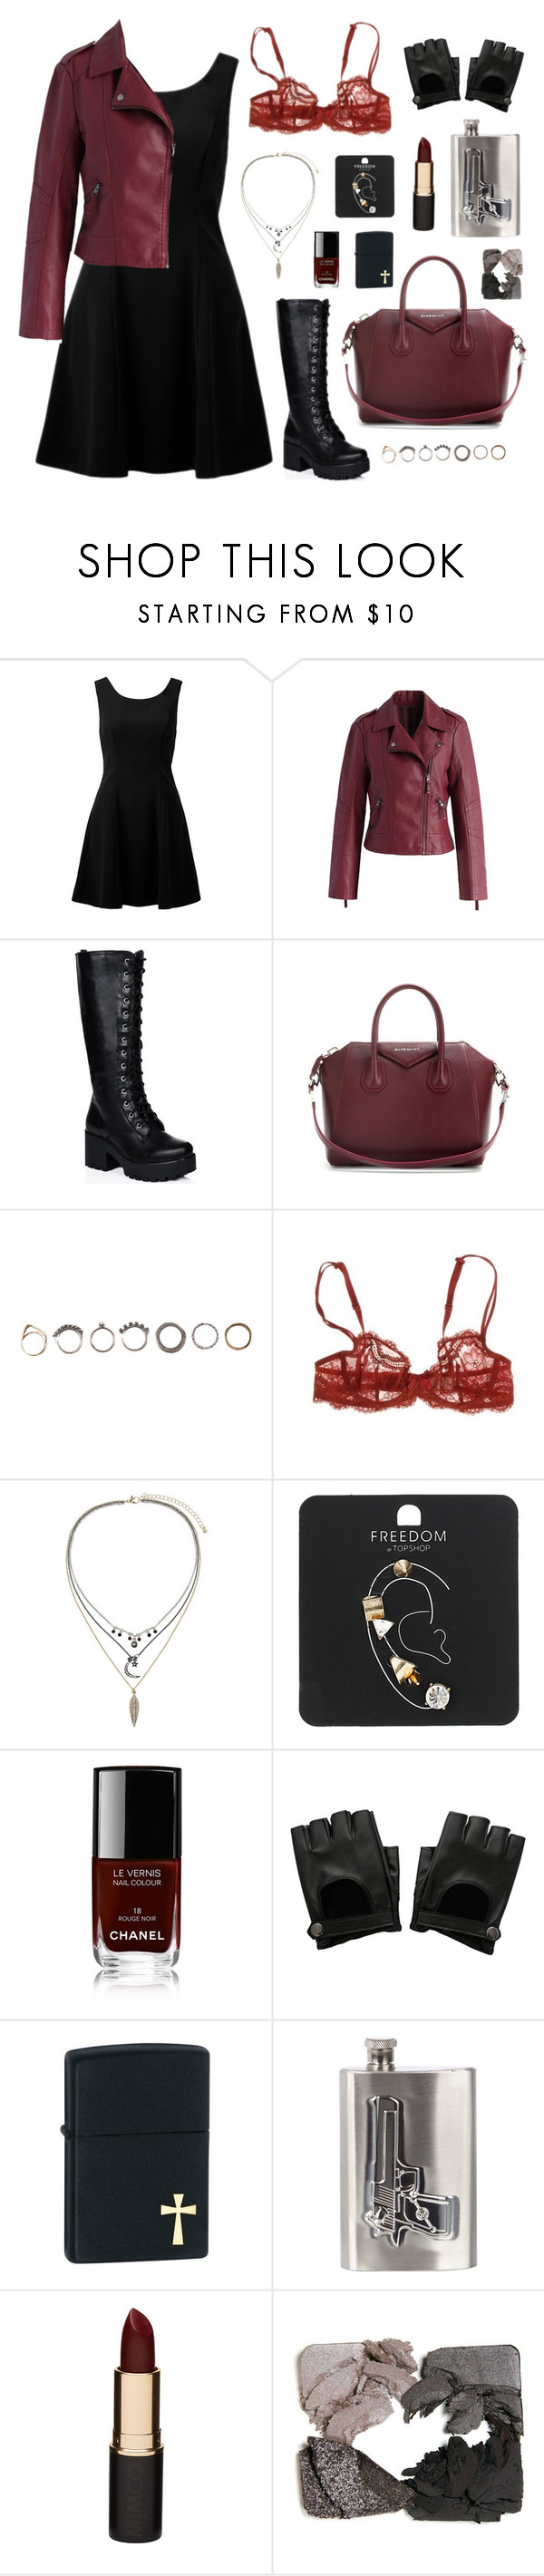 """""""daily outfit: saving people, hunting thing, family business. #4"""" by your-fair-lady on Polyvore featuring Forever New, Chicwish, SpyLoveBuy, Givenchy, Iosselliani, Simone Perele, Topshop, Chanel, Zippo and River Island"""